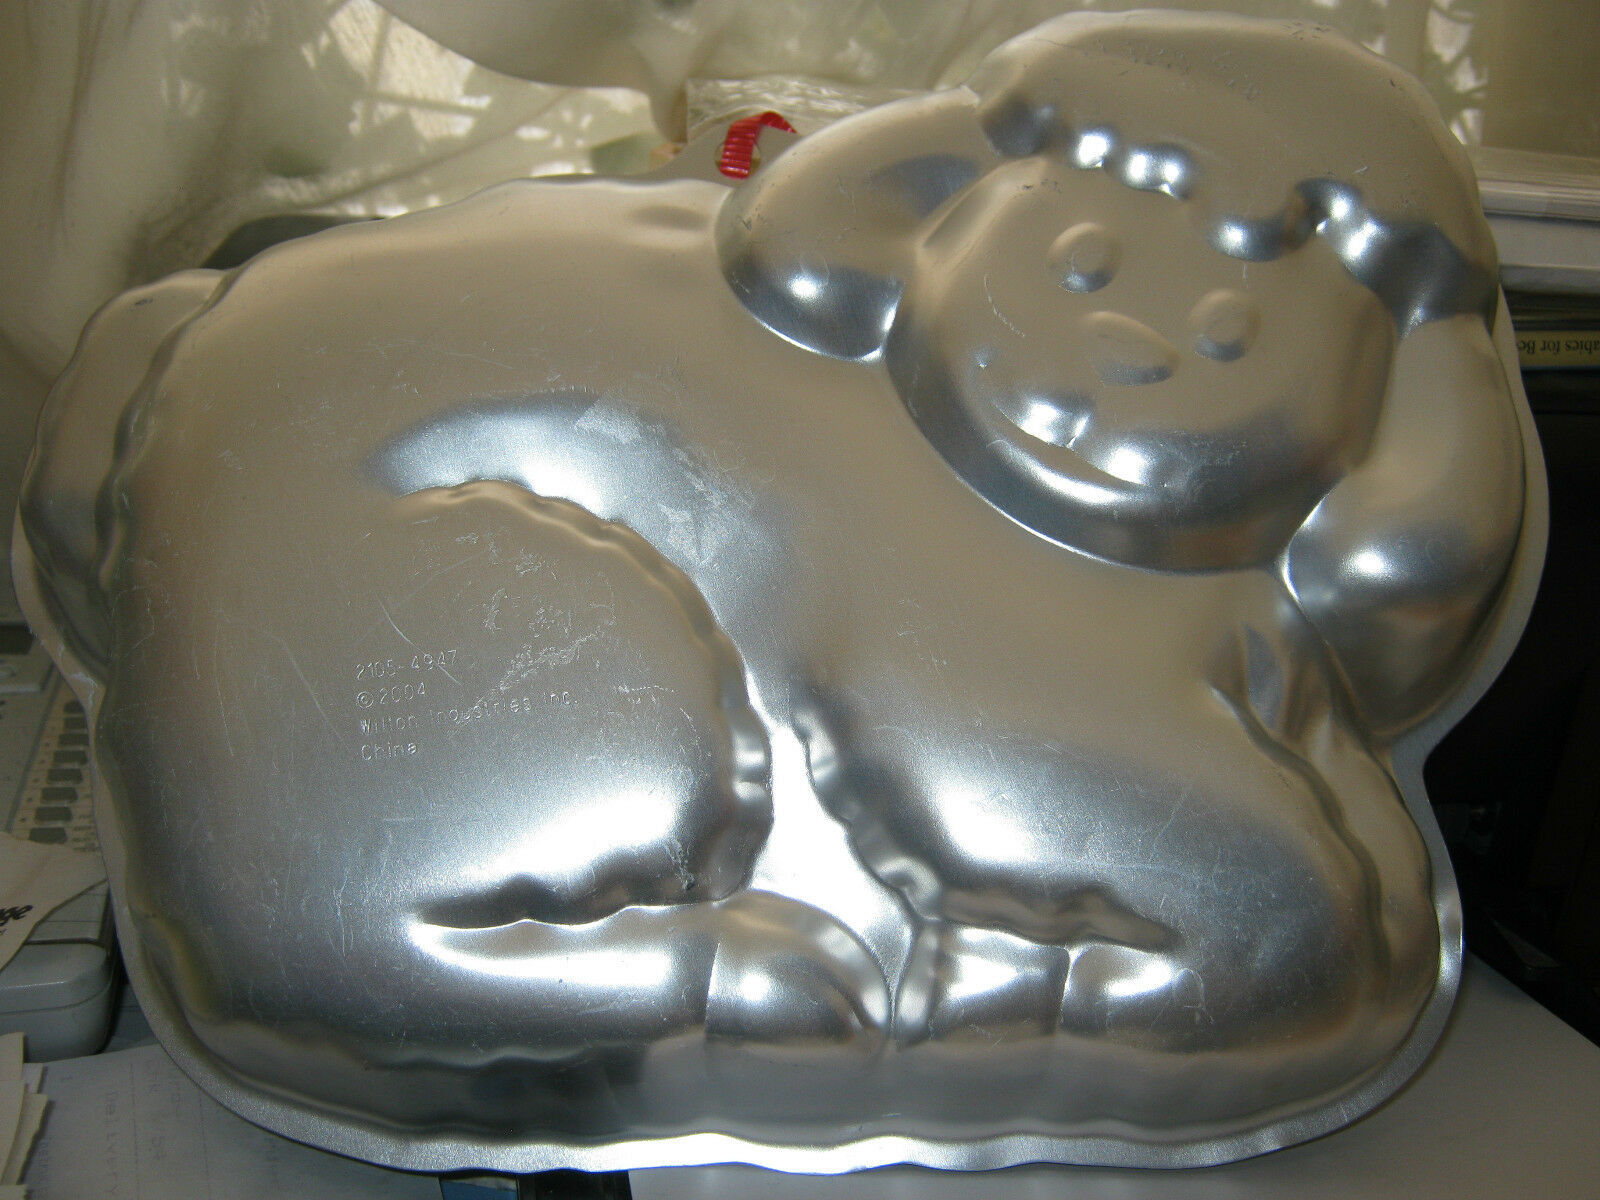 Primary image for Wilton Cuddly Spring Lamb Cake Pan 2105-4947